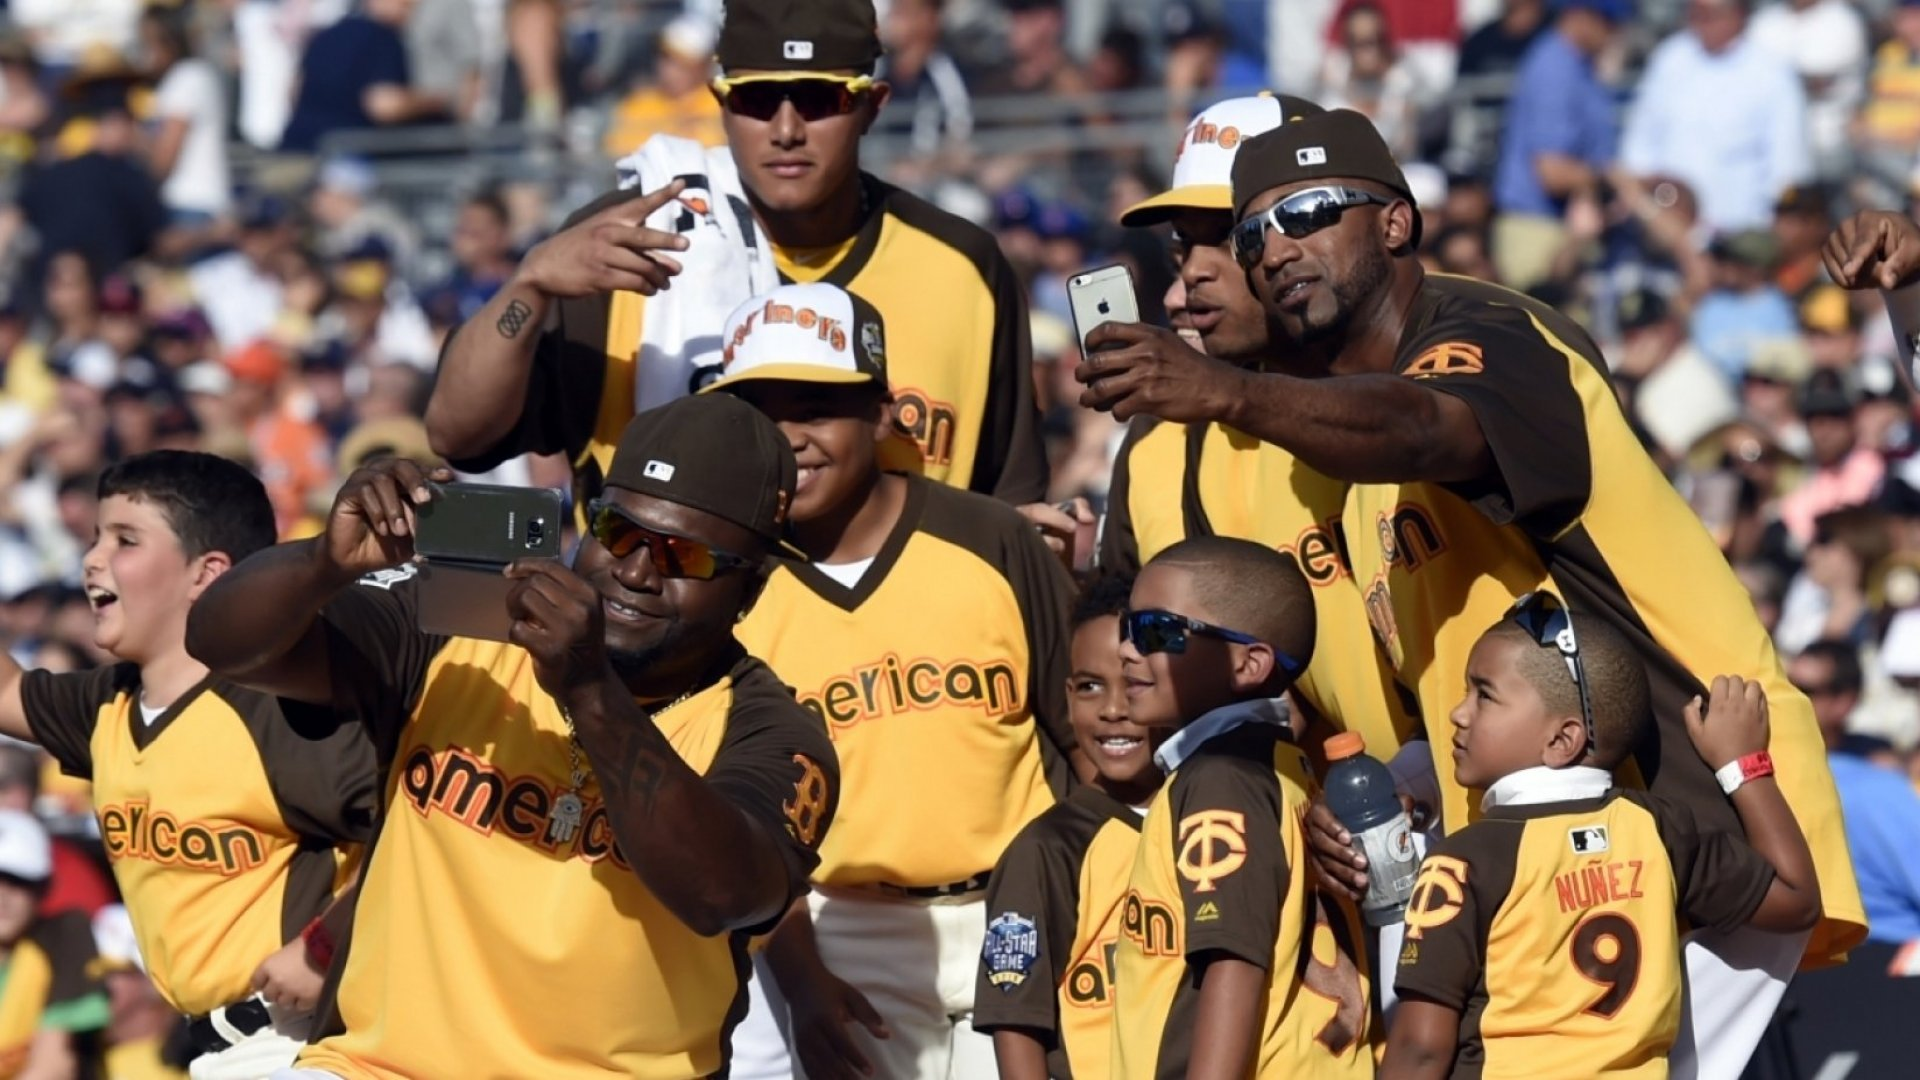 These 10 MLB Players Hit It Out Of The Park With Social Media